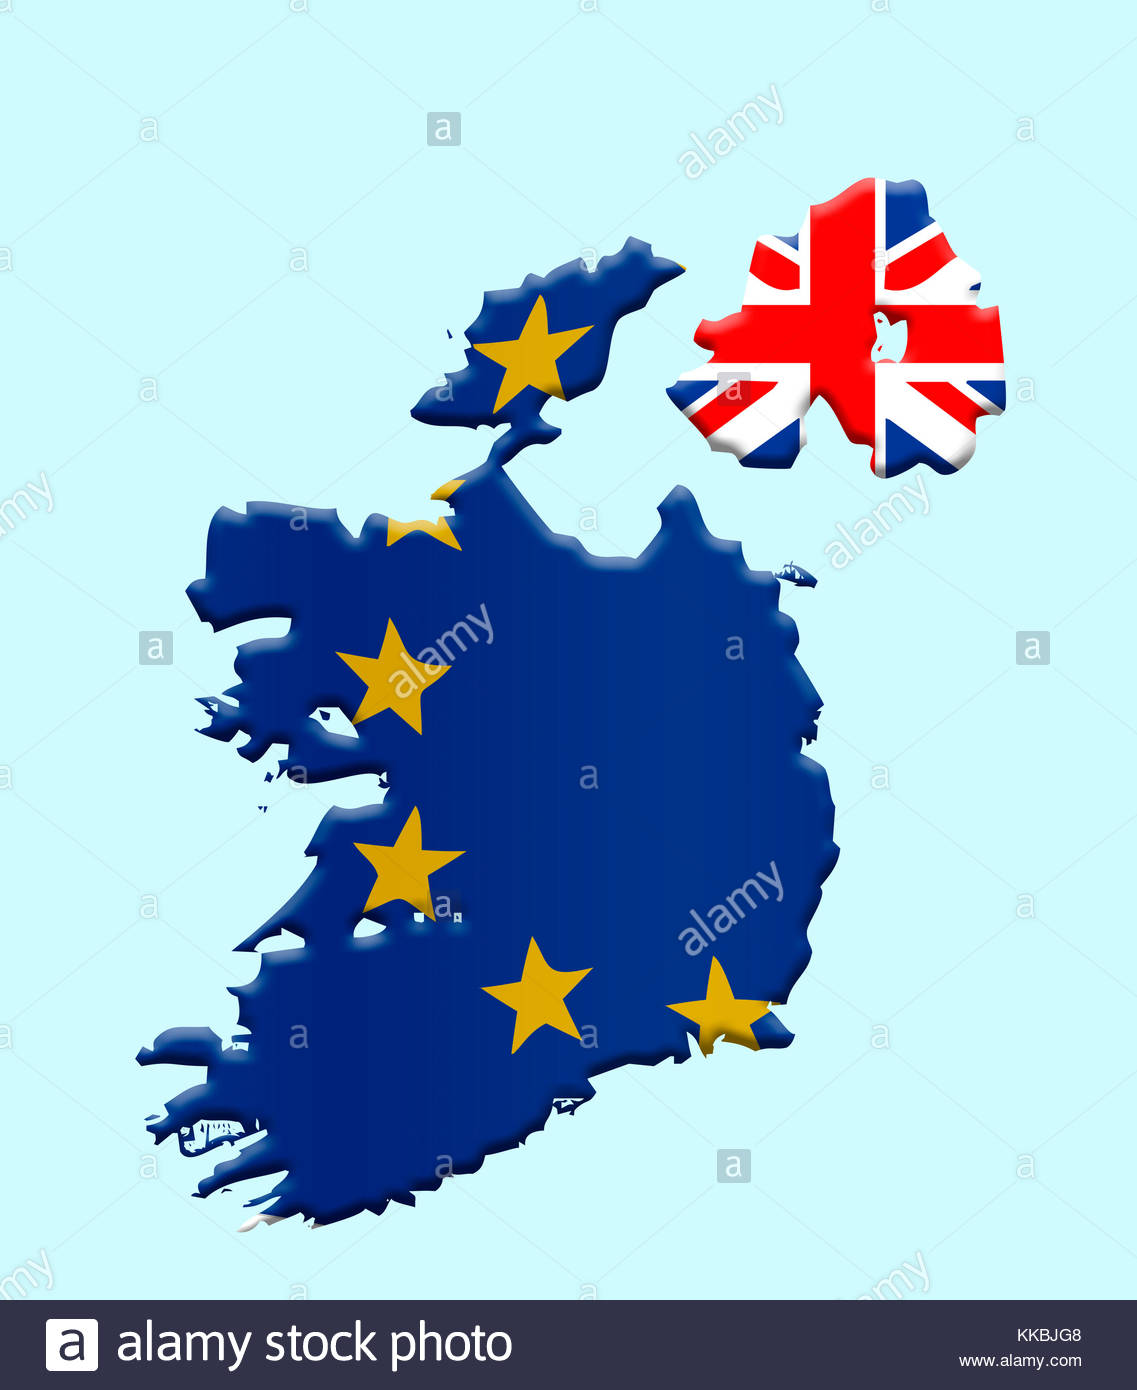 30th November 2017 Digital Illustration. With Brexit talks continuing the large hurdle which is the Irish border - Stock Image